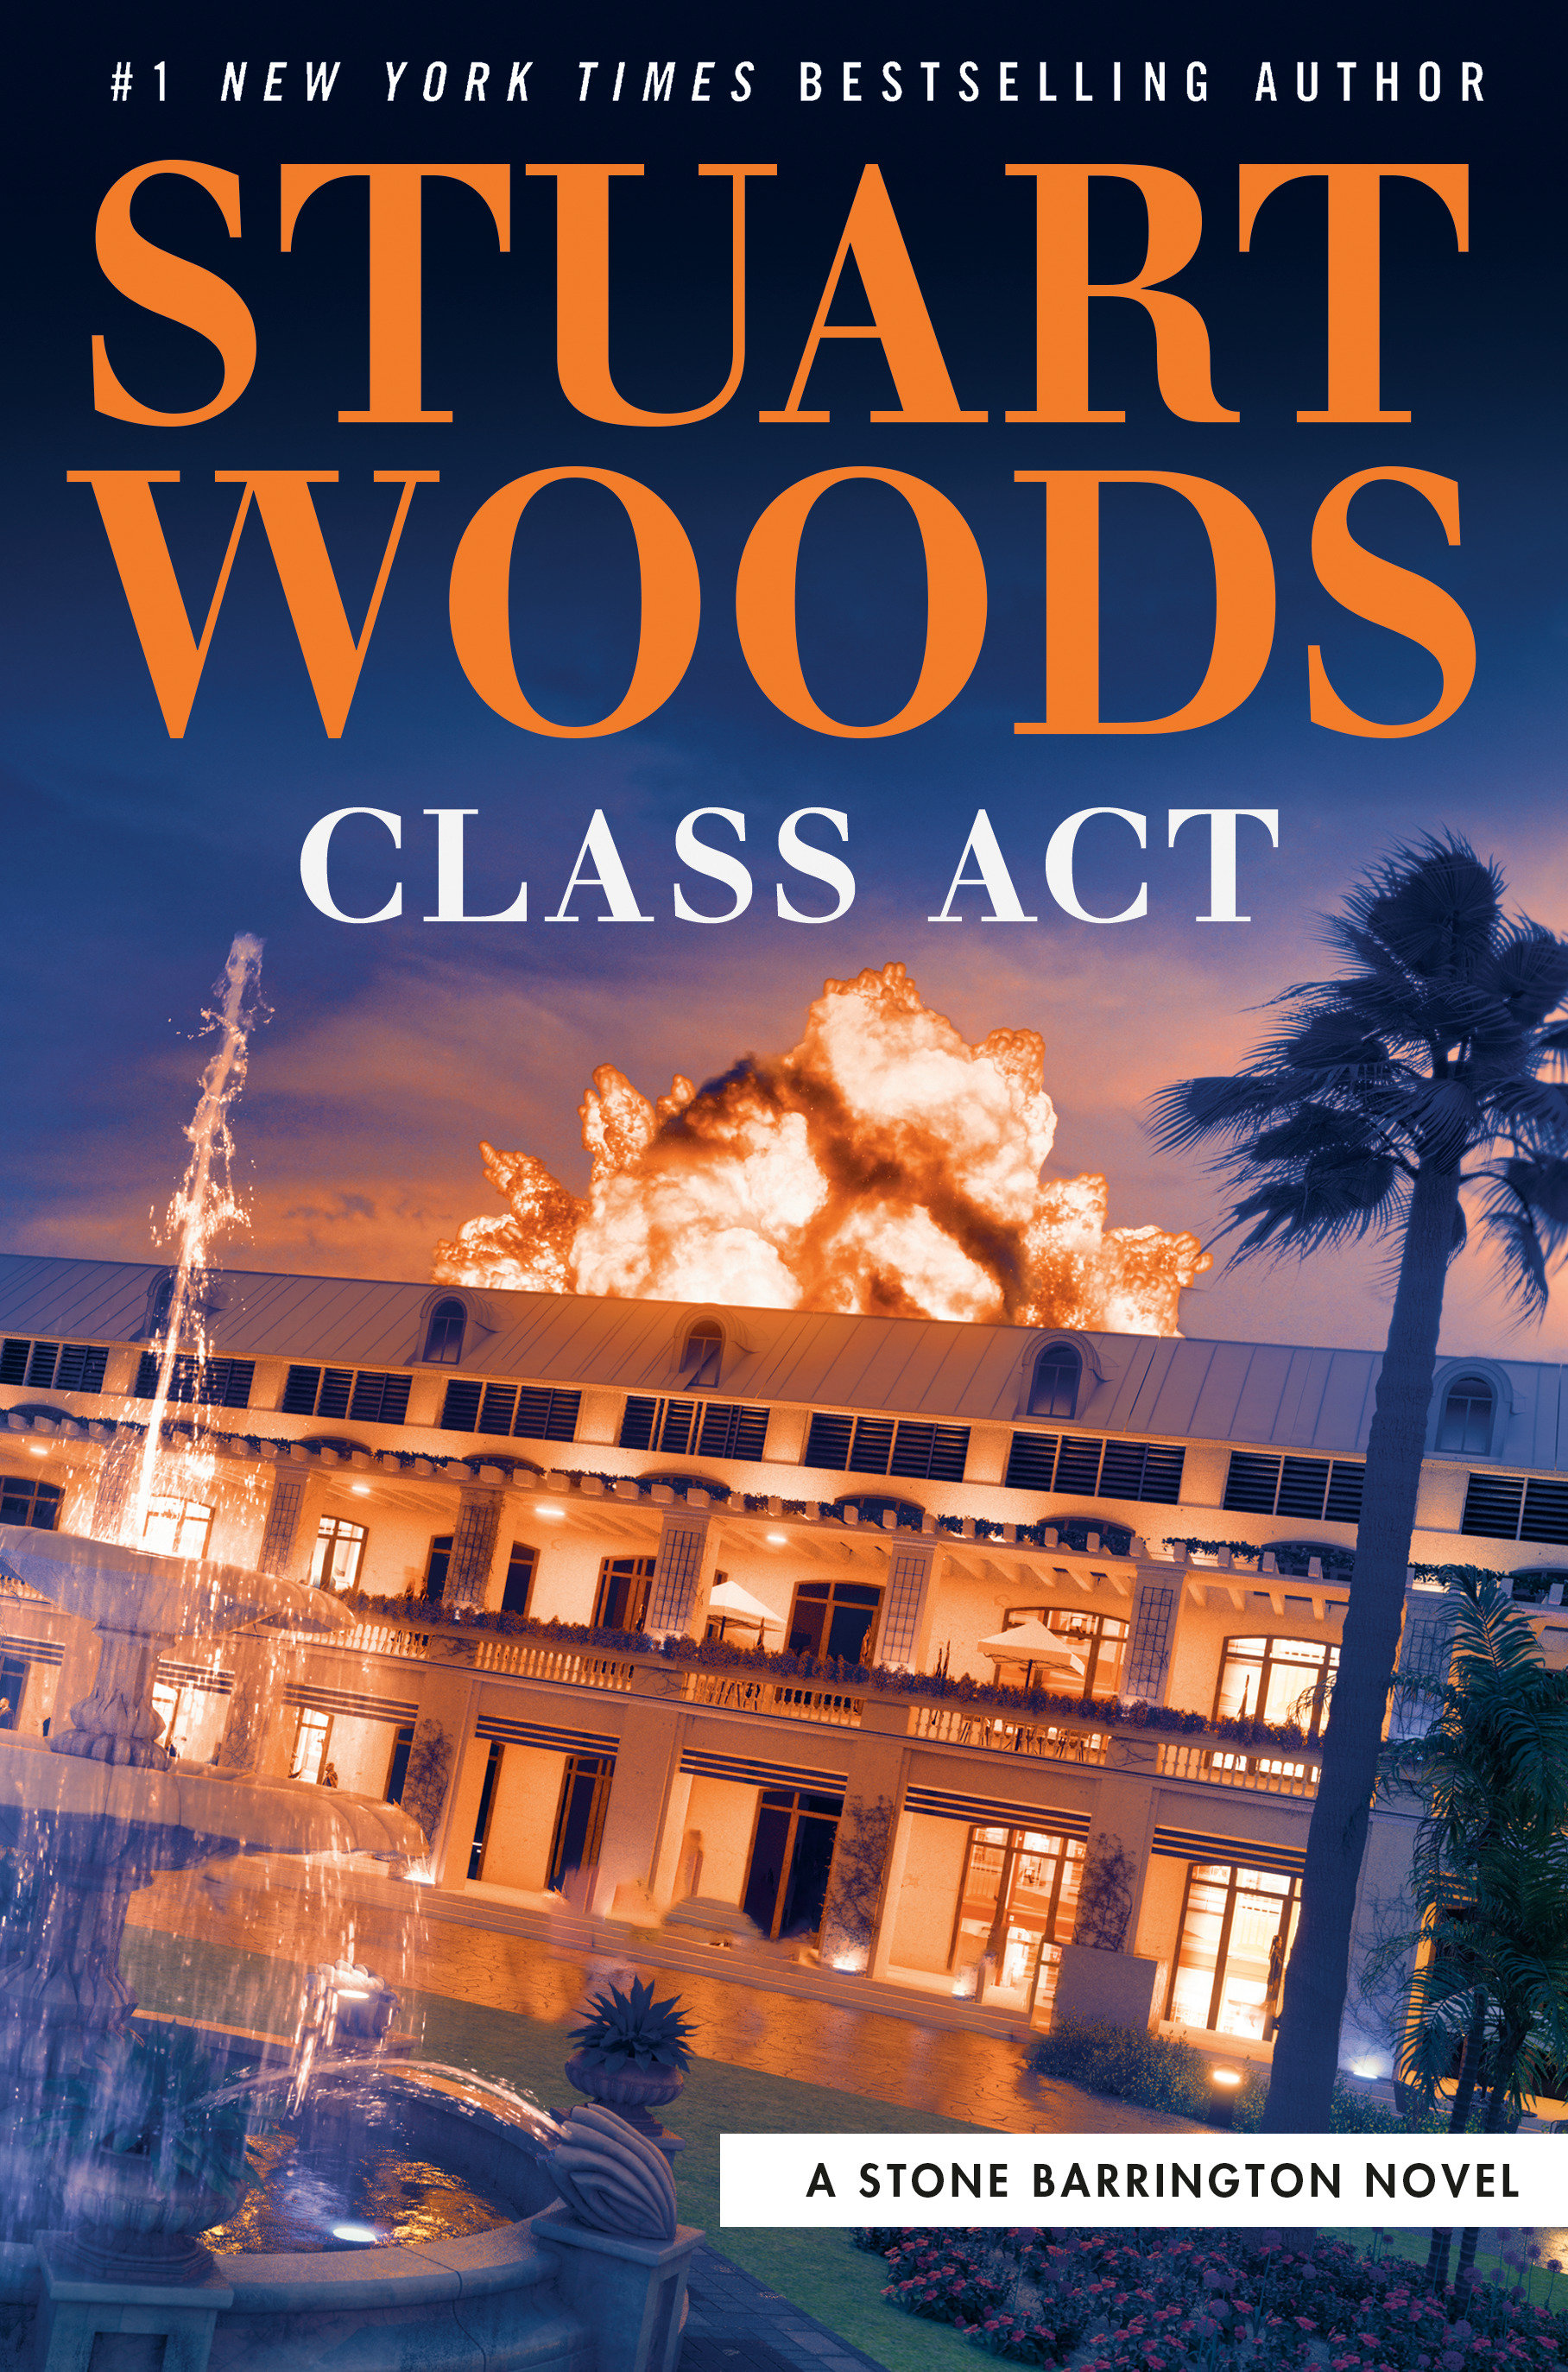 Cover Image of Class Act